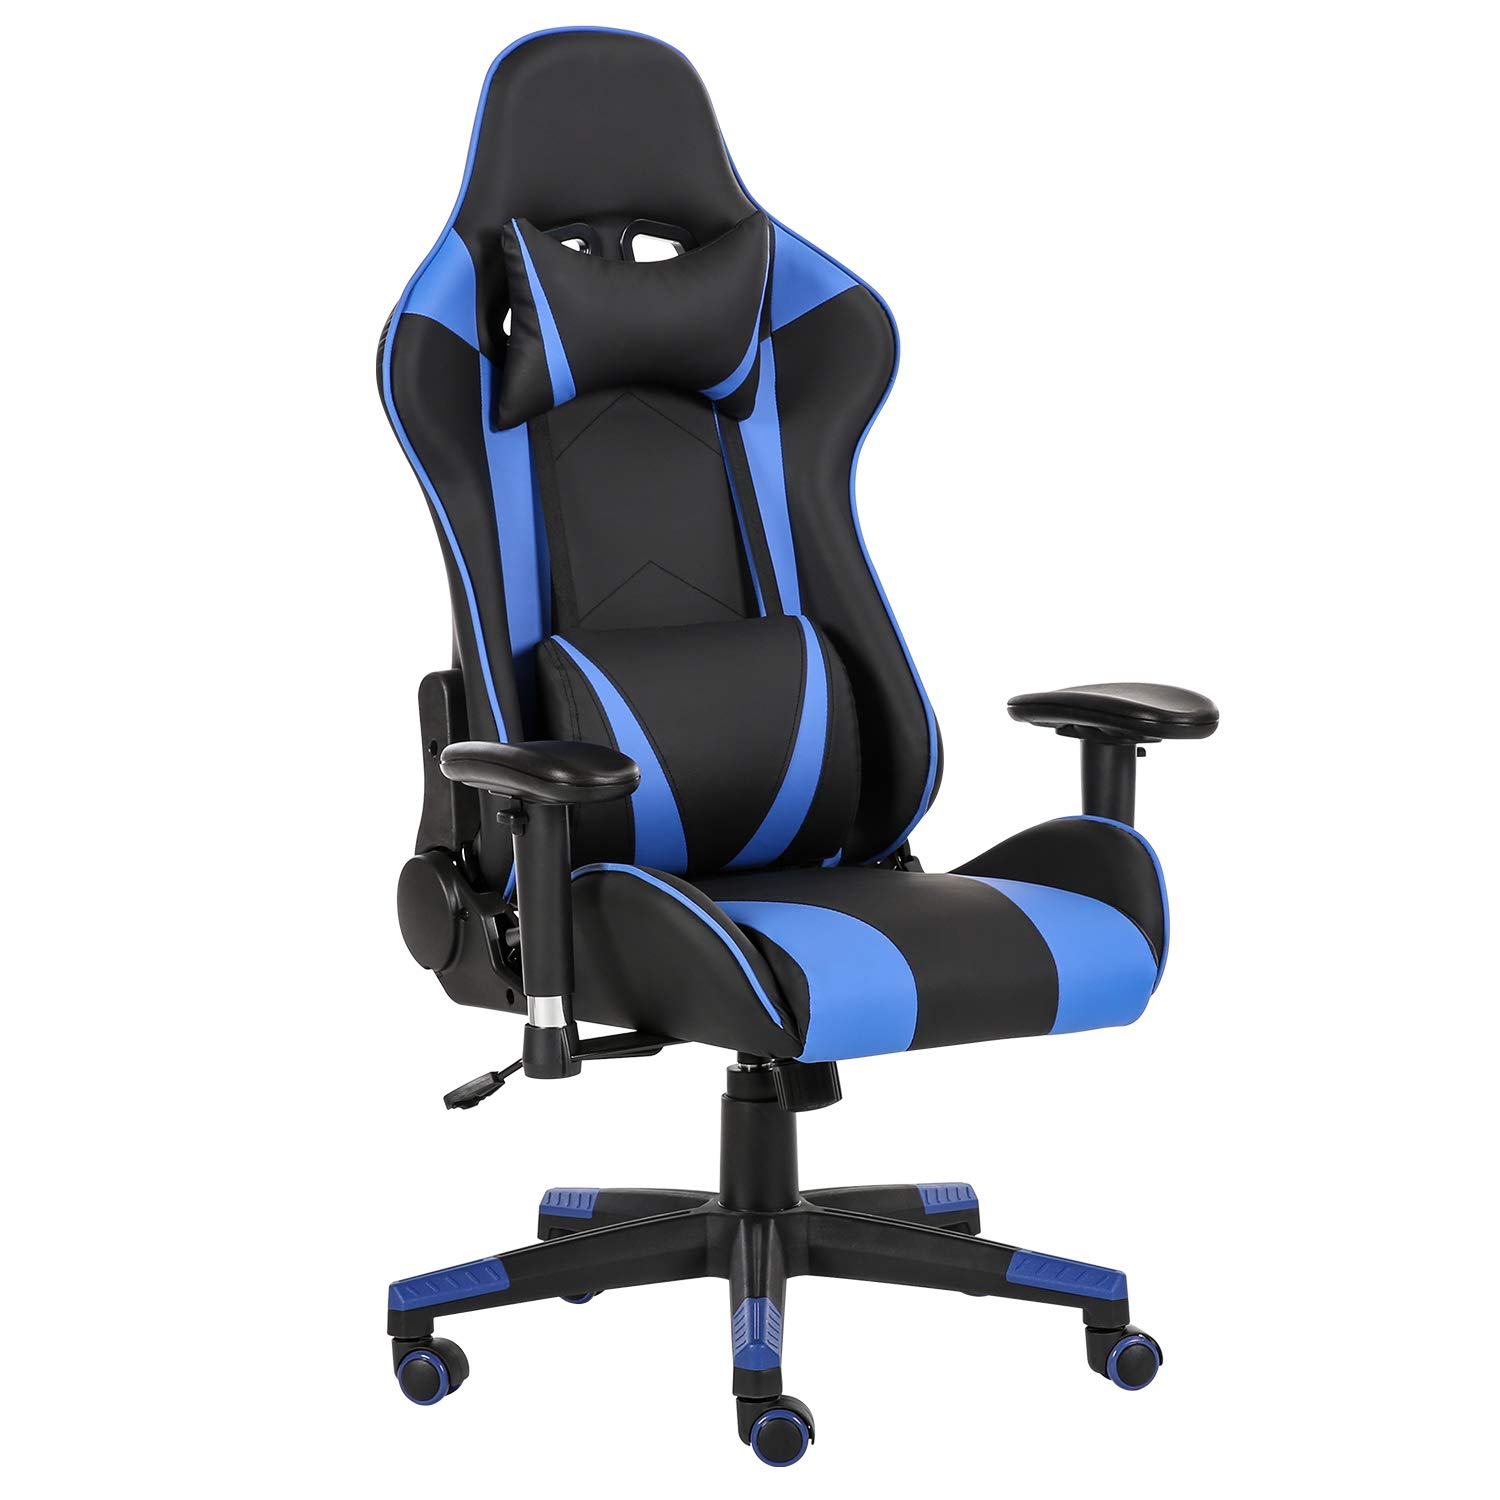 LCH Gaming Racing Chair Ergonomic High-Back Adjustment Computer Desk Chair PU Leather Executive Office Swivel Chairs with Headrest and Lumbar Support, Black